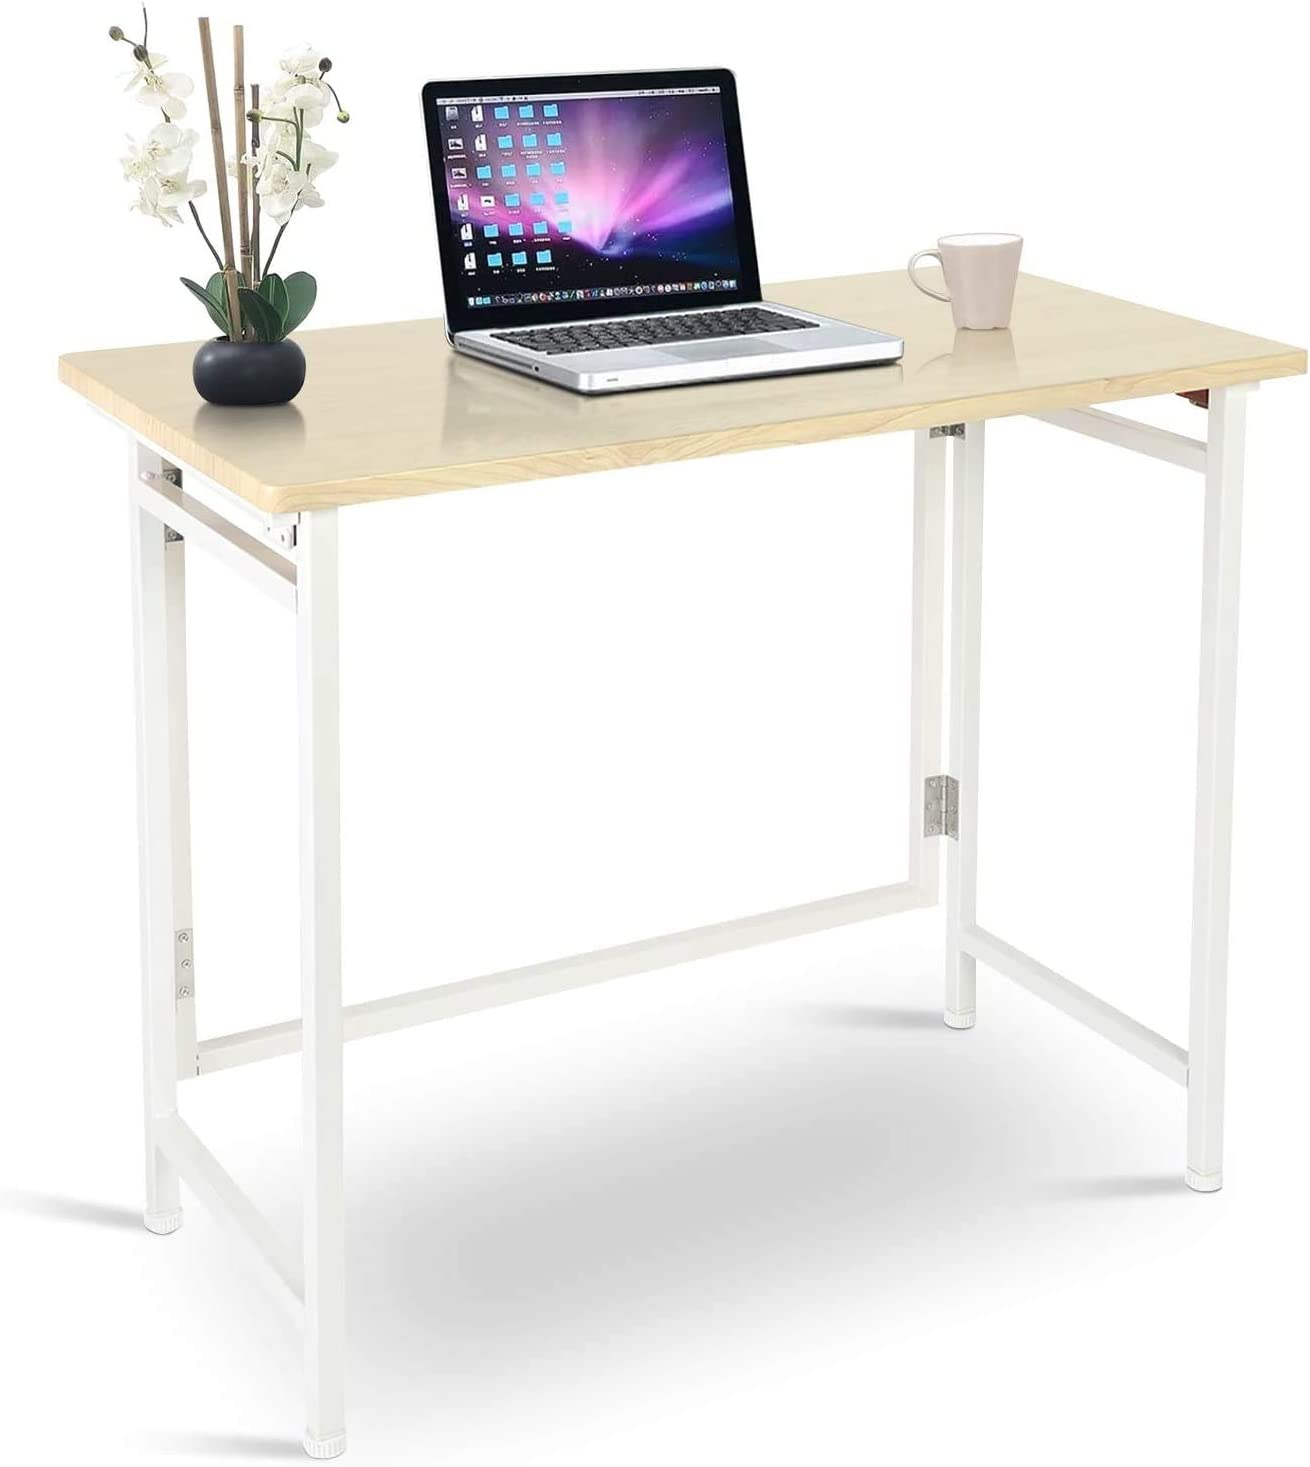 Aludest Electric Standing Desk Frame 47.2 x 23.6 Inch Tabletop - a good cheap modern office desk